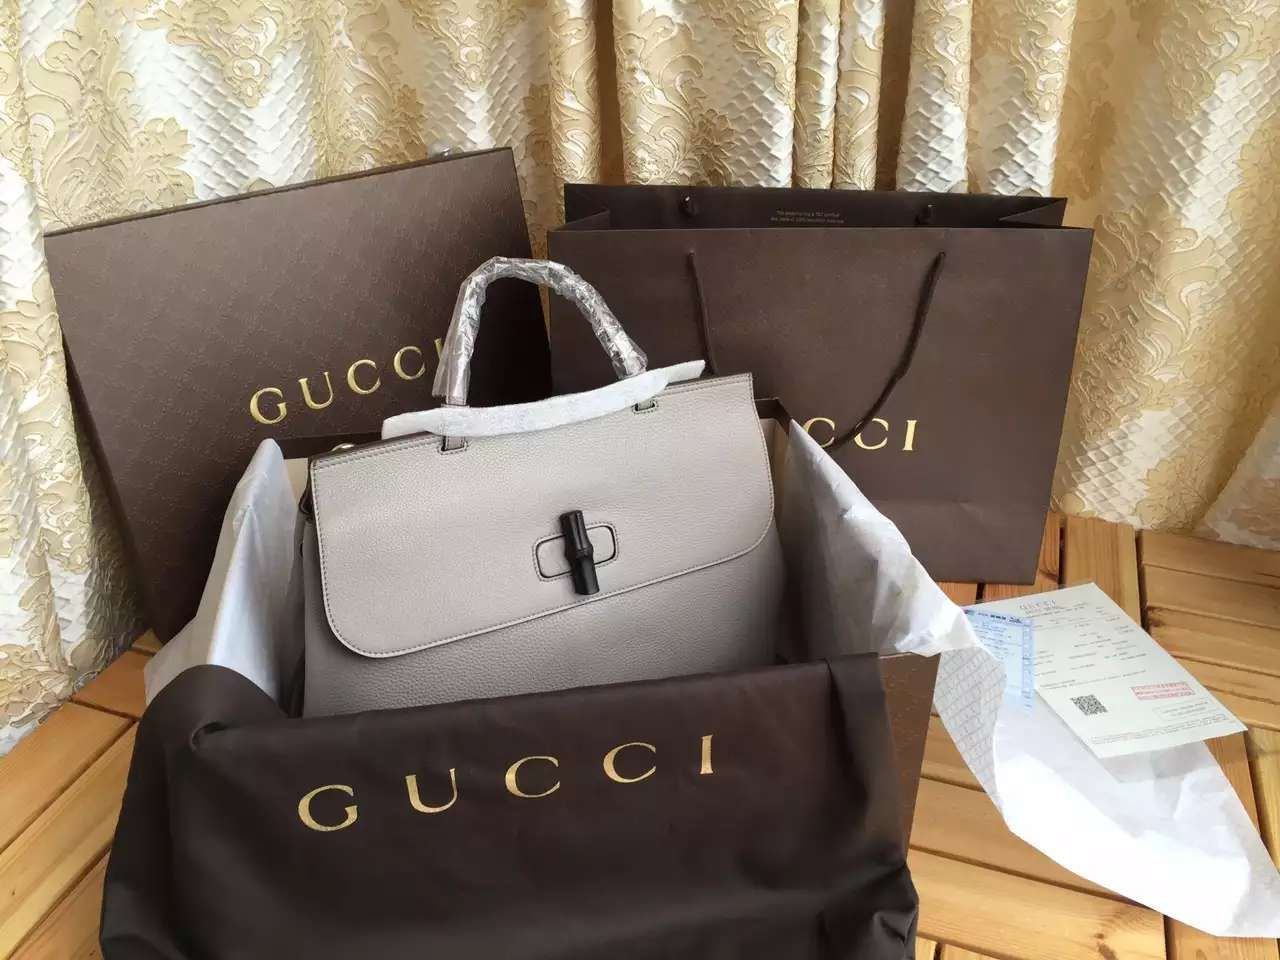 gucci Bag, ID : 23392(FORSALE:a@yybags.com), gucci leather belts online, gucci fashion bags, gucci briefcase on wheels, designer of gucci, gucci womens purses, gucci quality leather wallets, website gucci, gucci brand values, gucci kids online shopping, gucci designer bags online, gucci original website, black gucci wallet #gucciBag #gucci #gucci #metal #briefcase